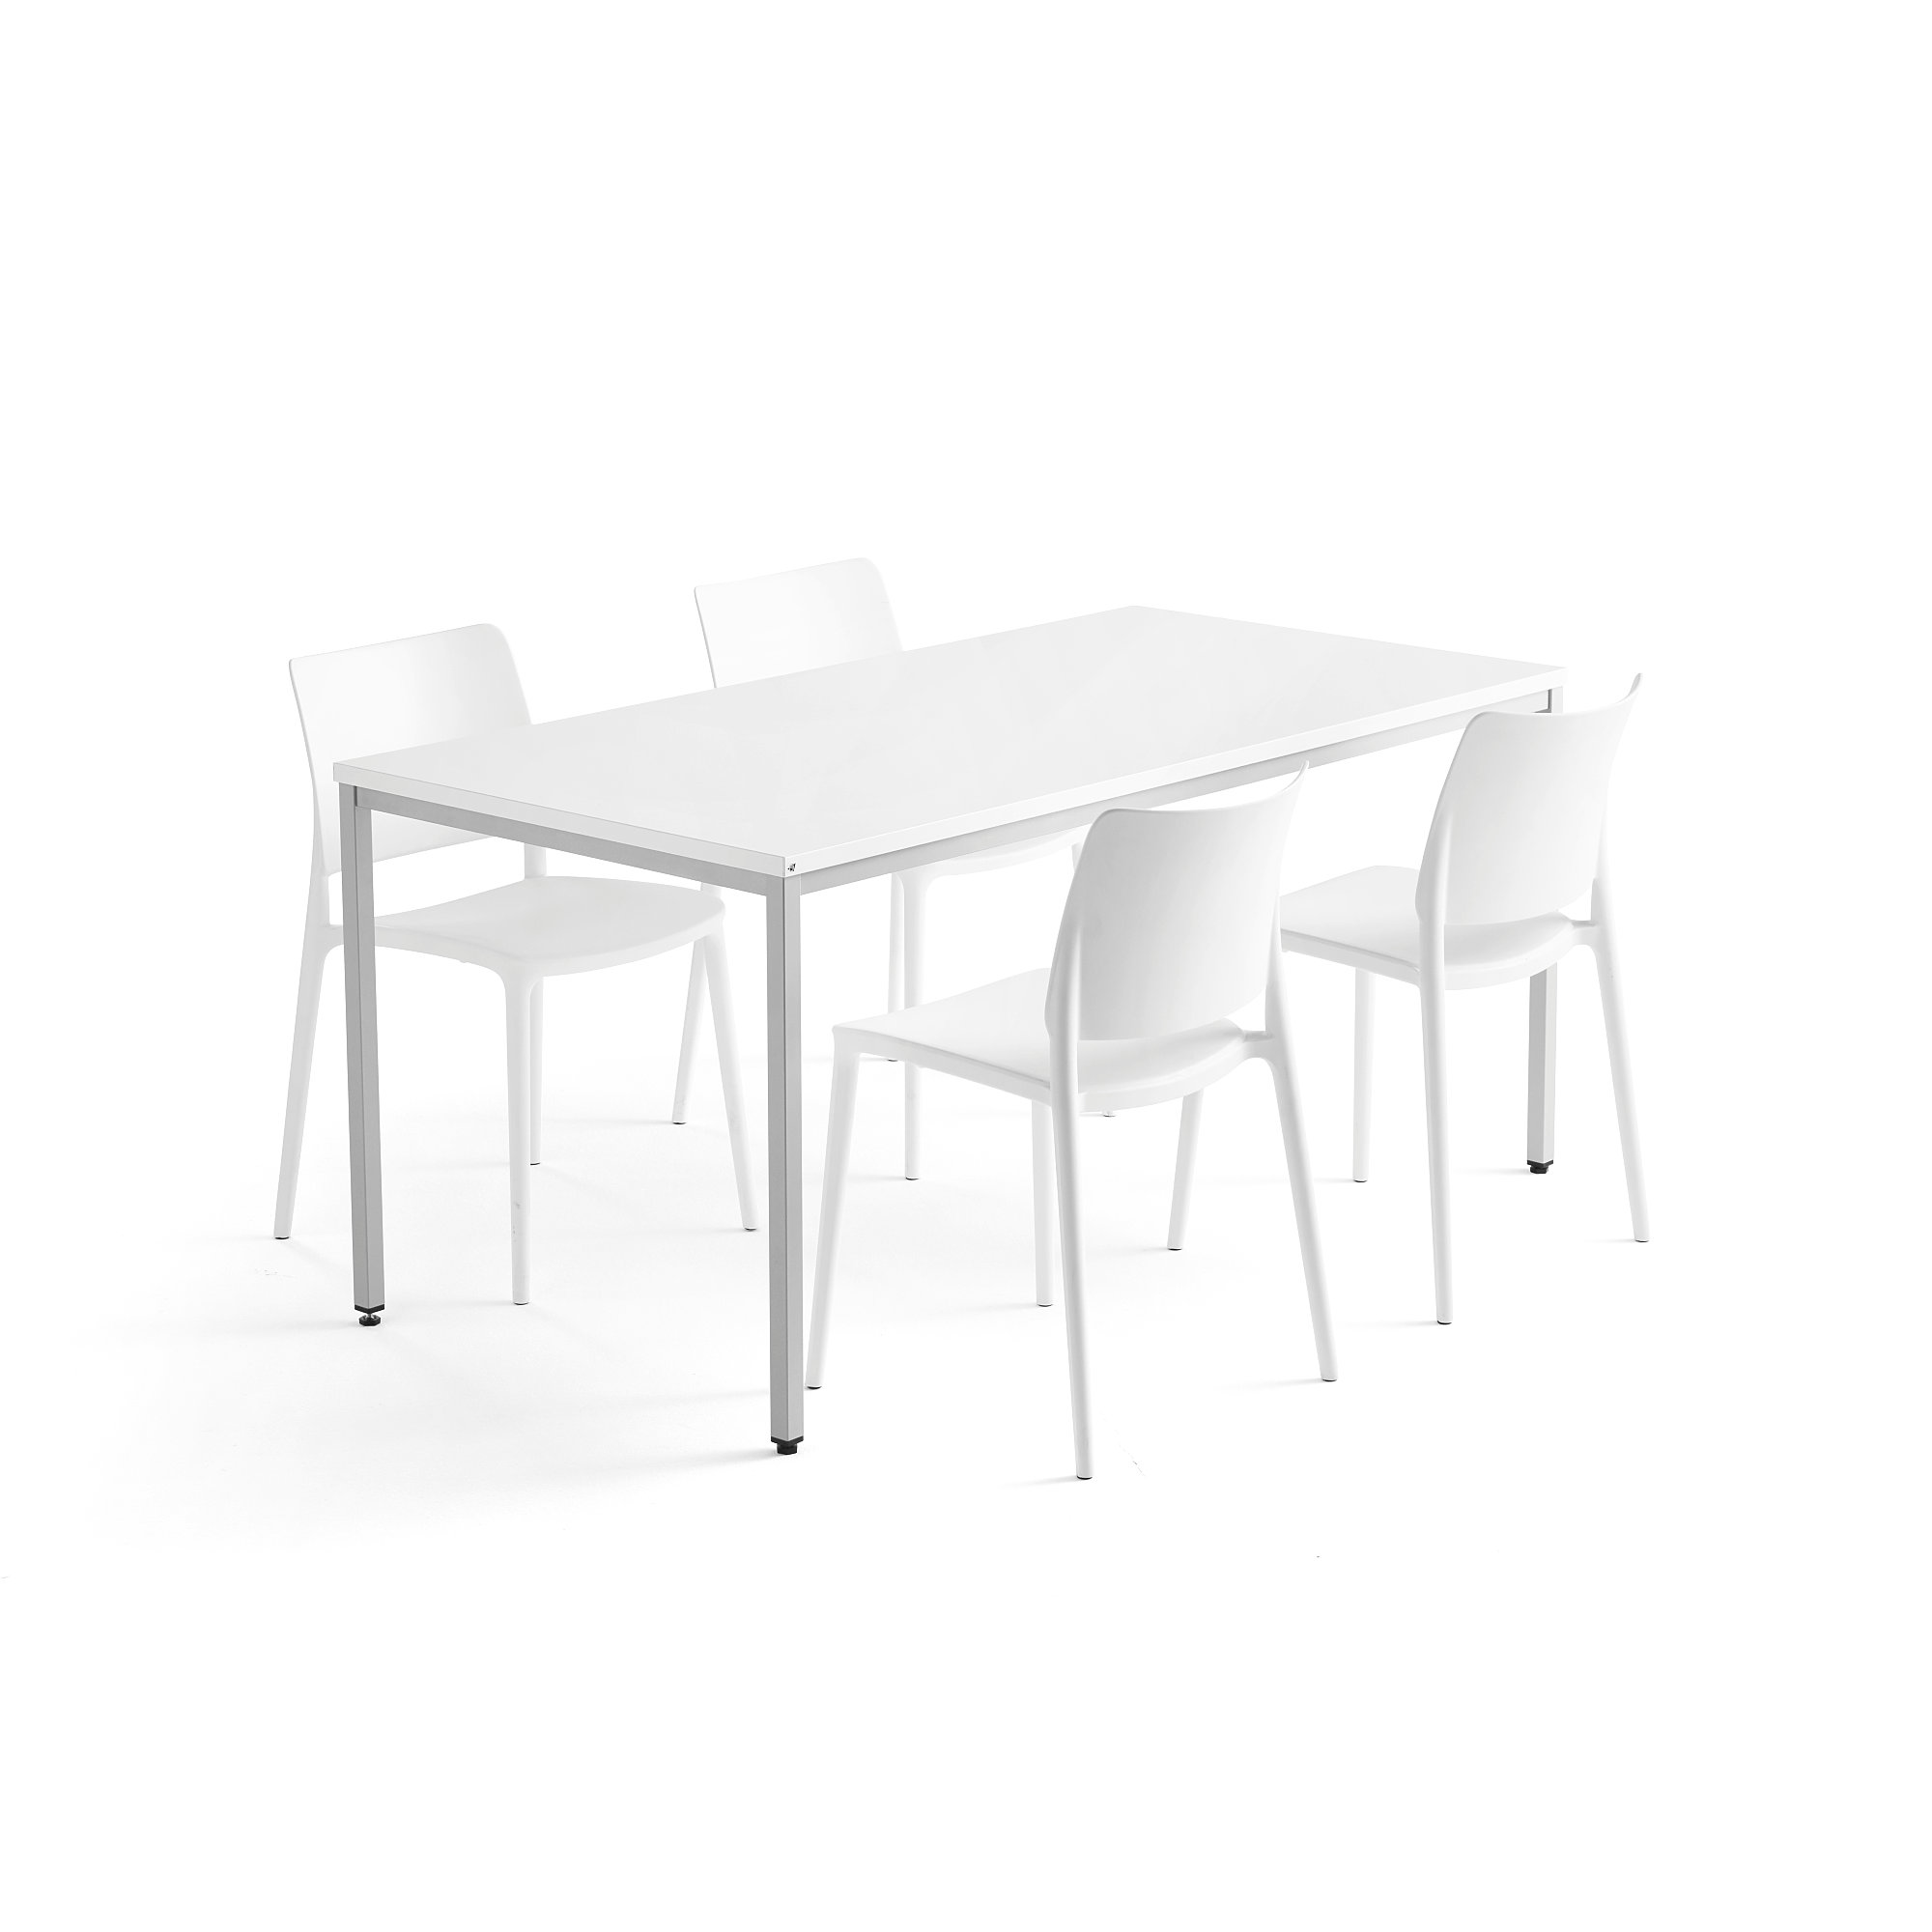 White Stackable Chairs Canteen Package Modulus Rio 1 Table And 4 White Chairs Aj Products Online